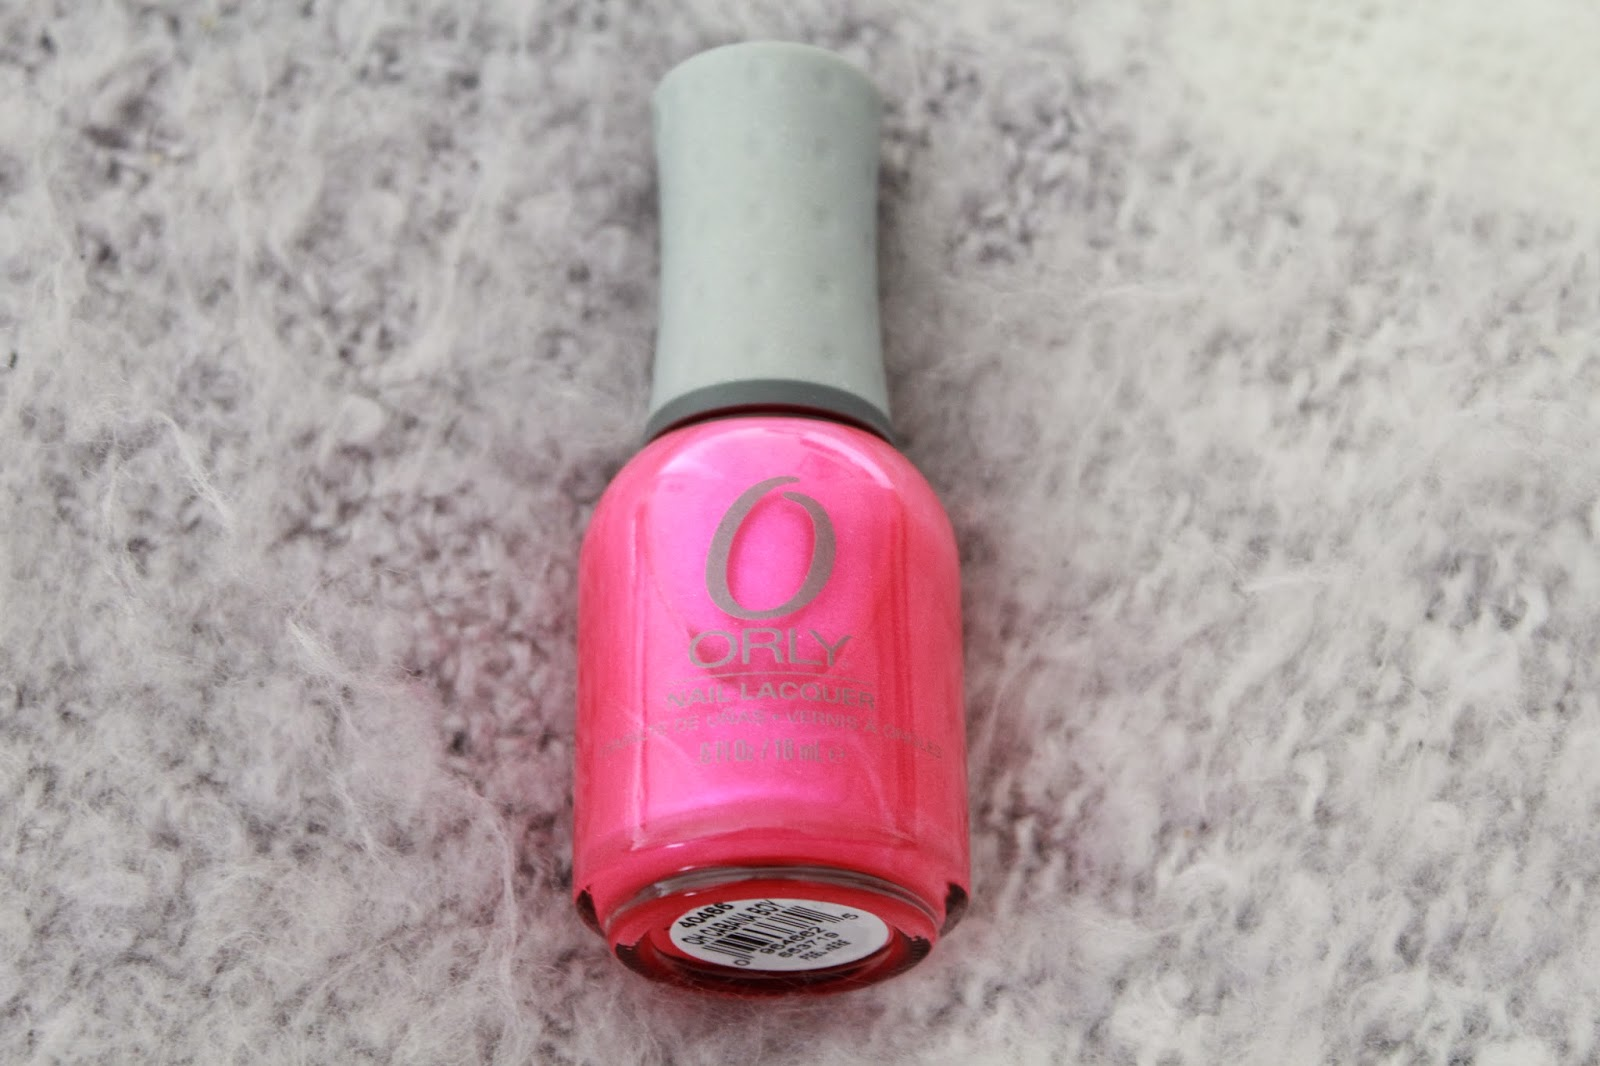 Orly Nail Lacquer in Oh Cabana Boy